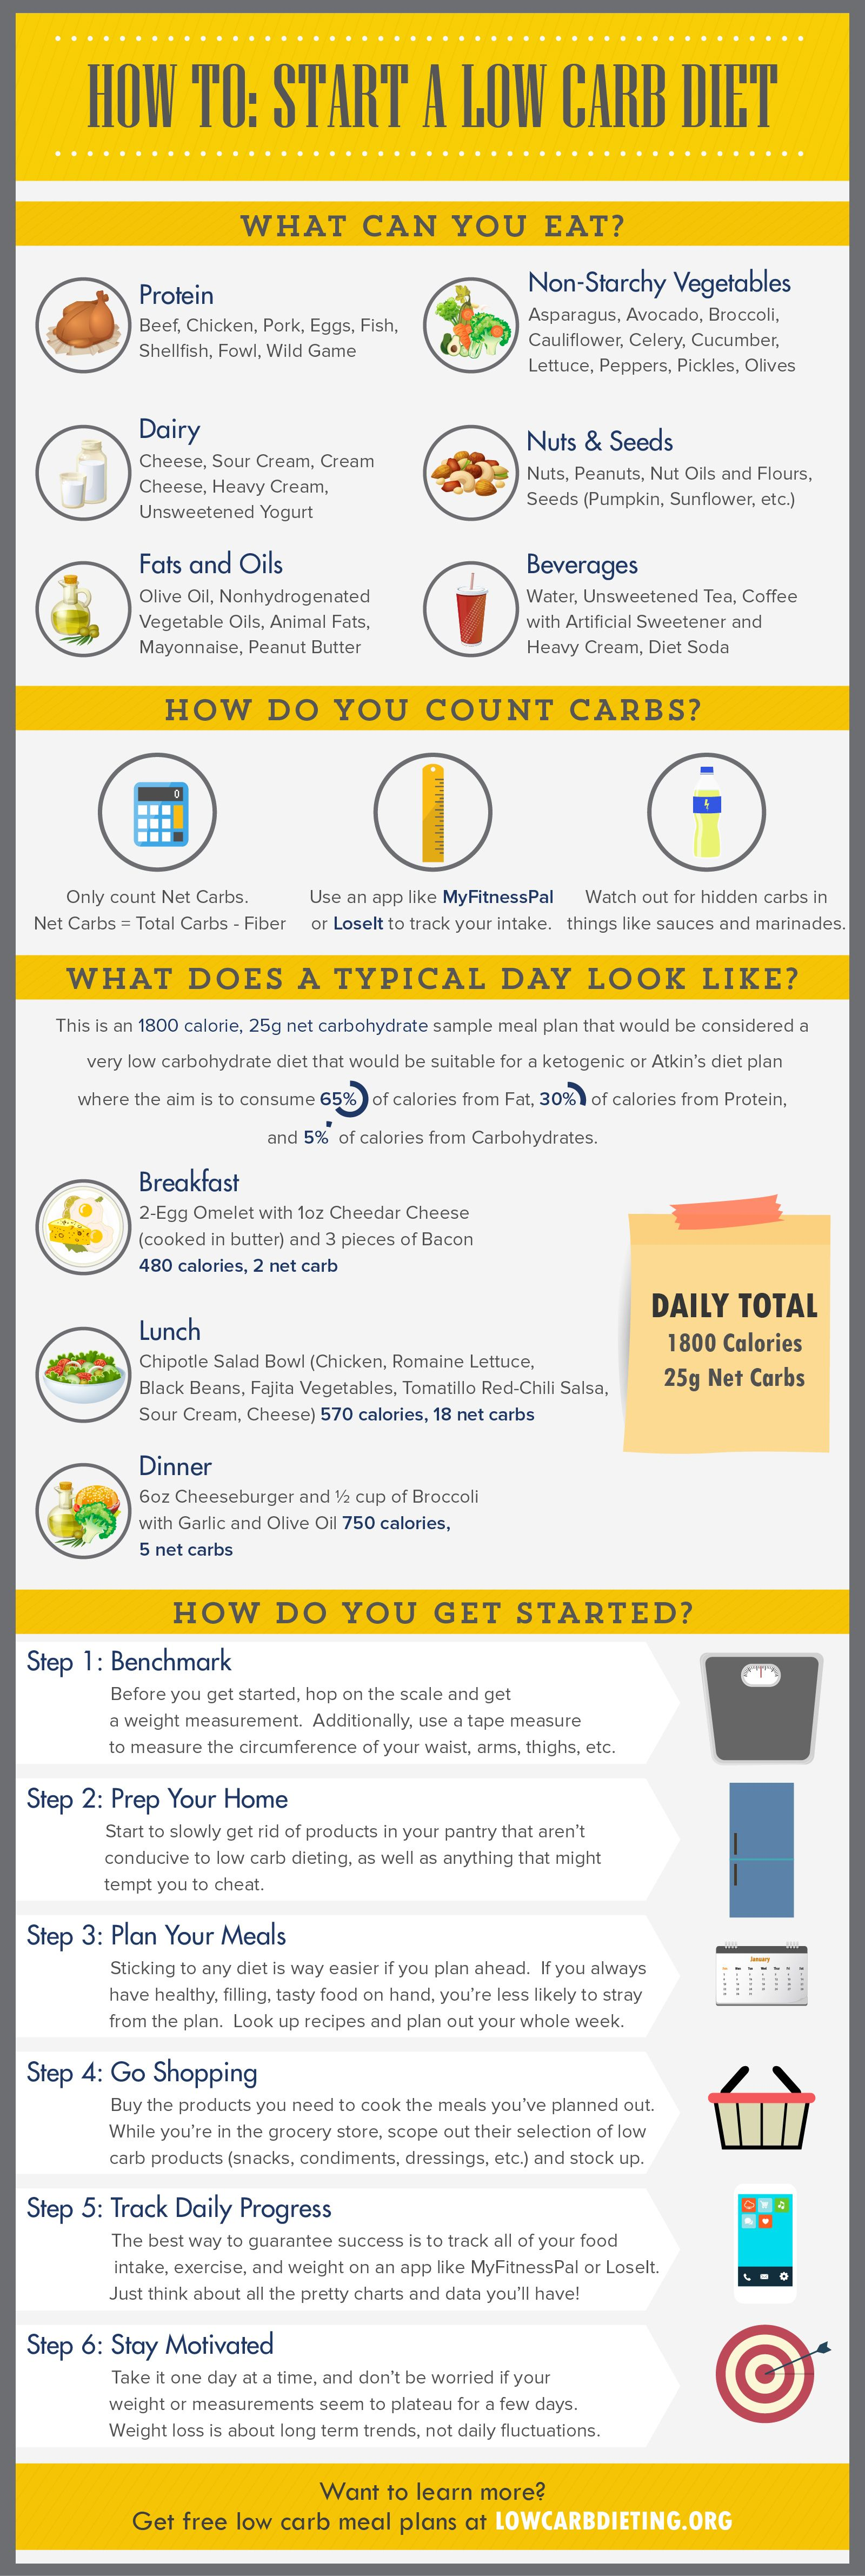 How To Lose Most Weight In 3 Days